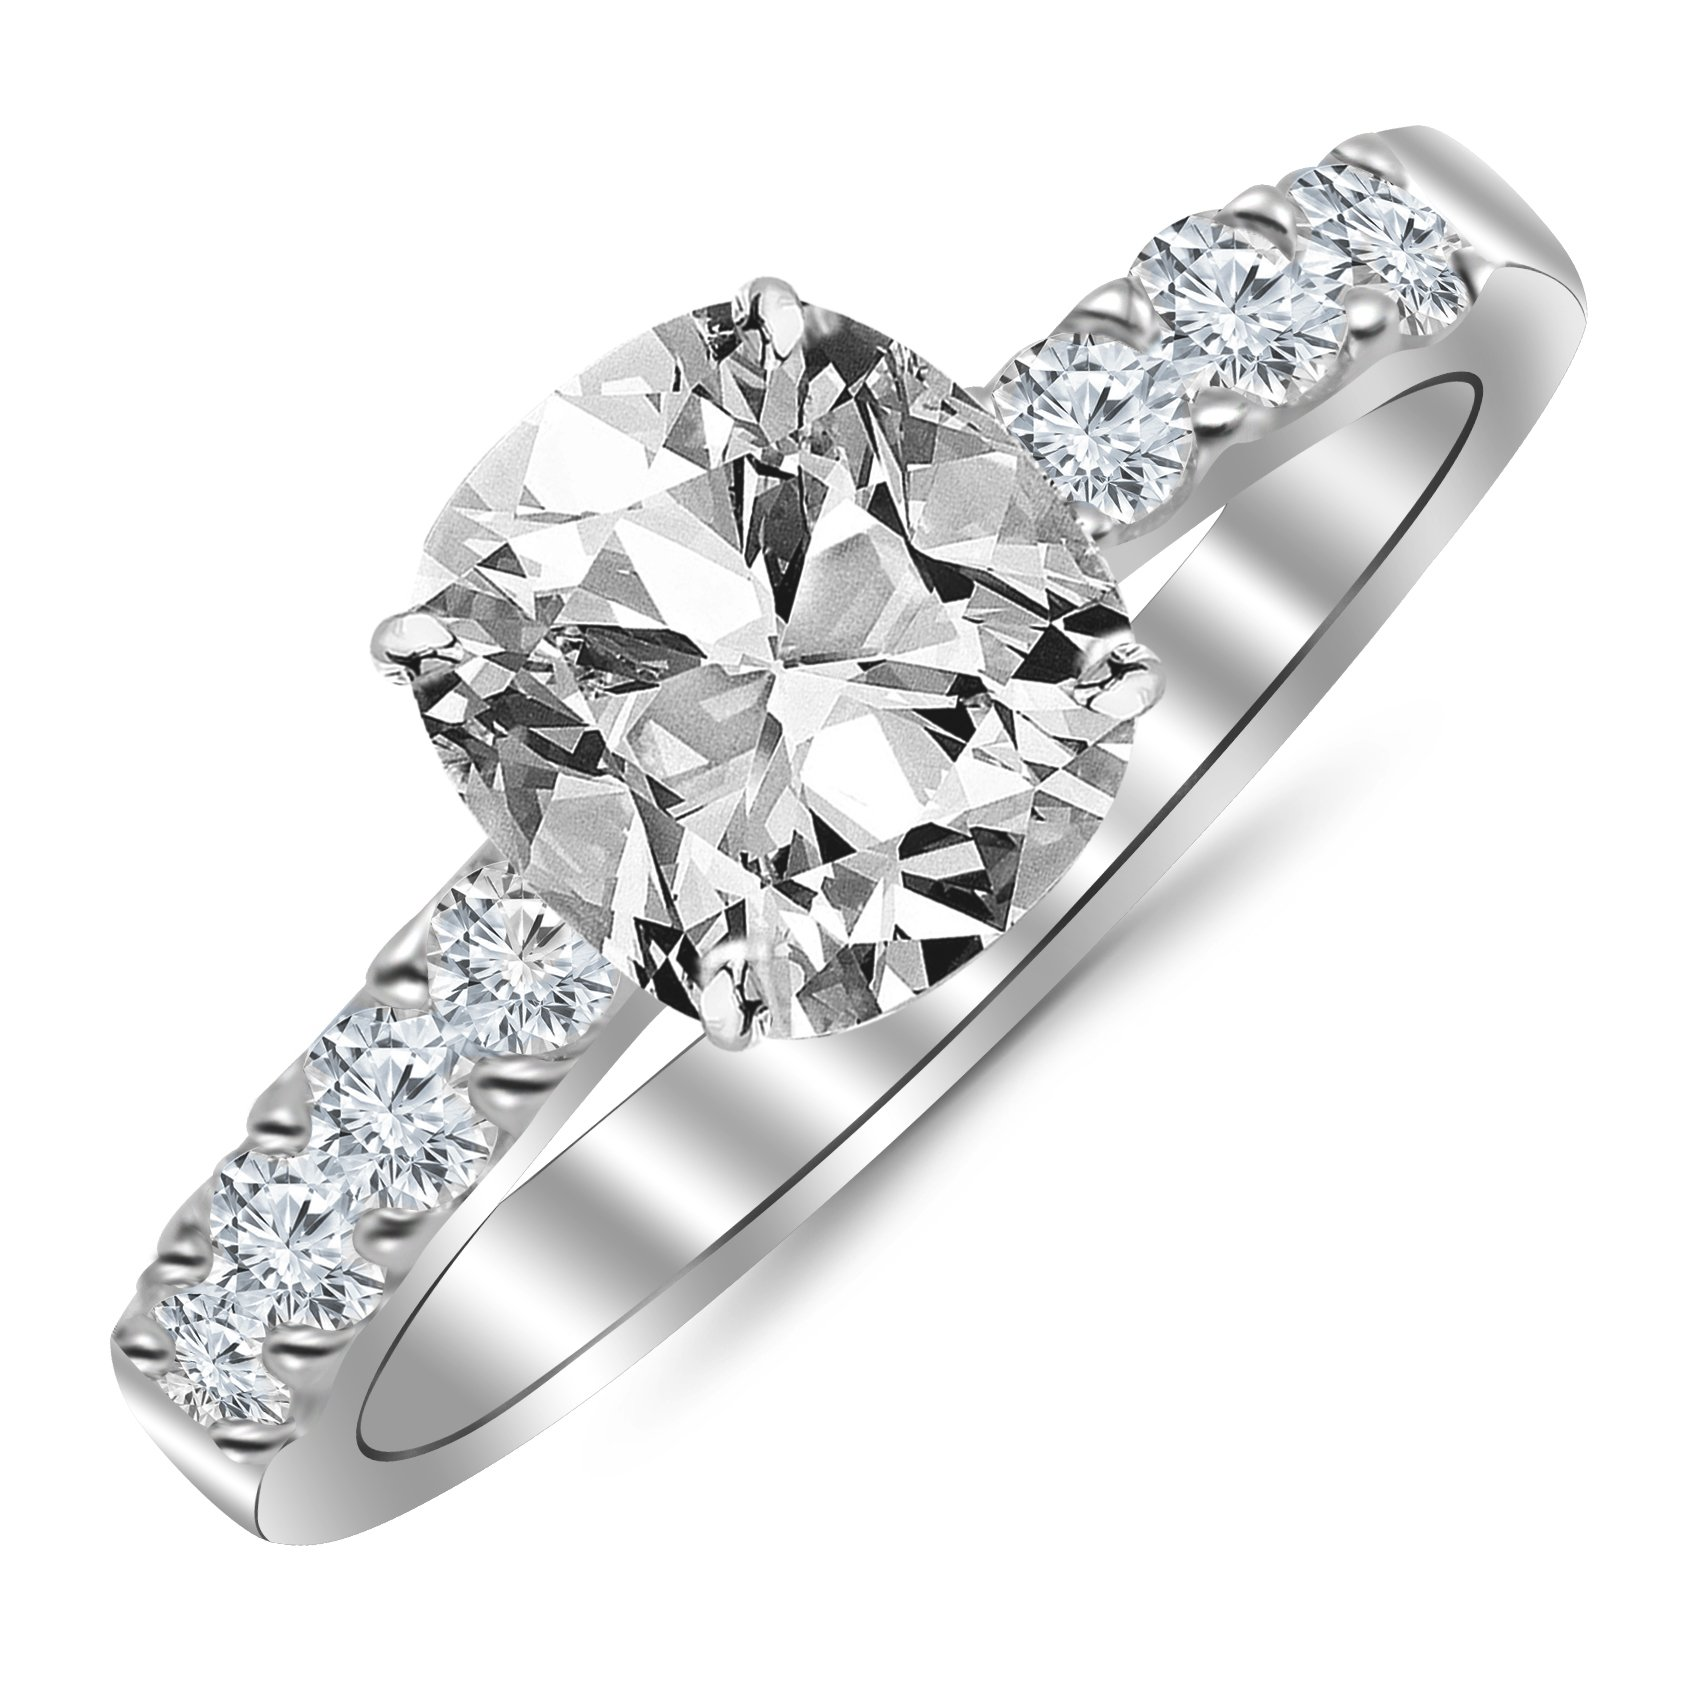 GIA Certified 1.04 Carat Cushion Cut/Shape 14K White Gold Classic Prong Set Diamond Engagement Ring 4 Prong with a 0.53 Carat, J Color, SI1 Clarity Center Stone